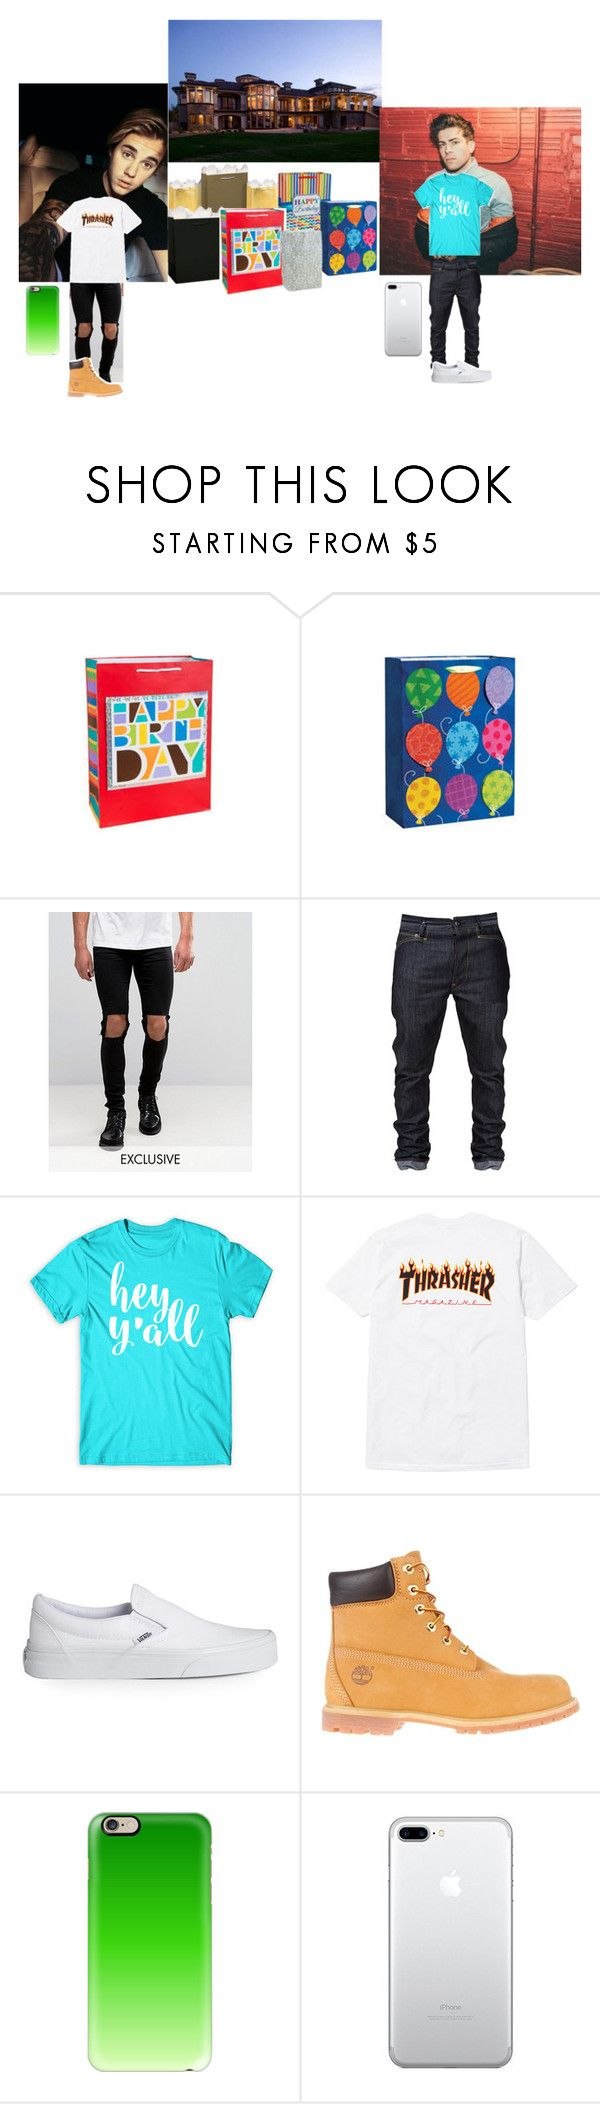 """💎Justin & Steven💎Going To Logan's Birthday Party."" by geazybxtch24 ❤ liked on Polyvore featuring interior, interiors, interior design, home, home decor, interior decorating, Justin Bieber, Reclaimed Vintage, Vans and Timberland"